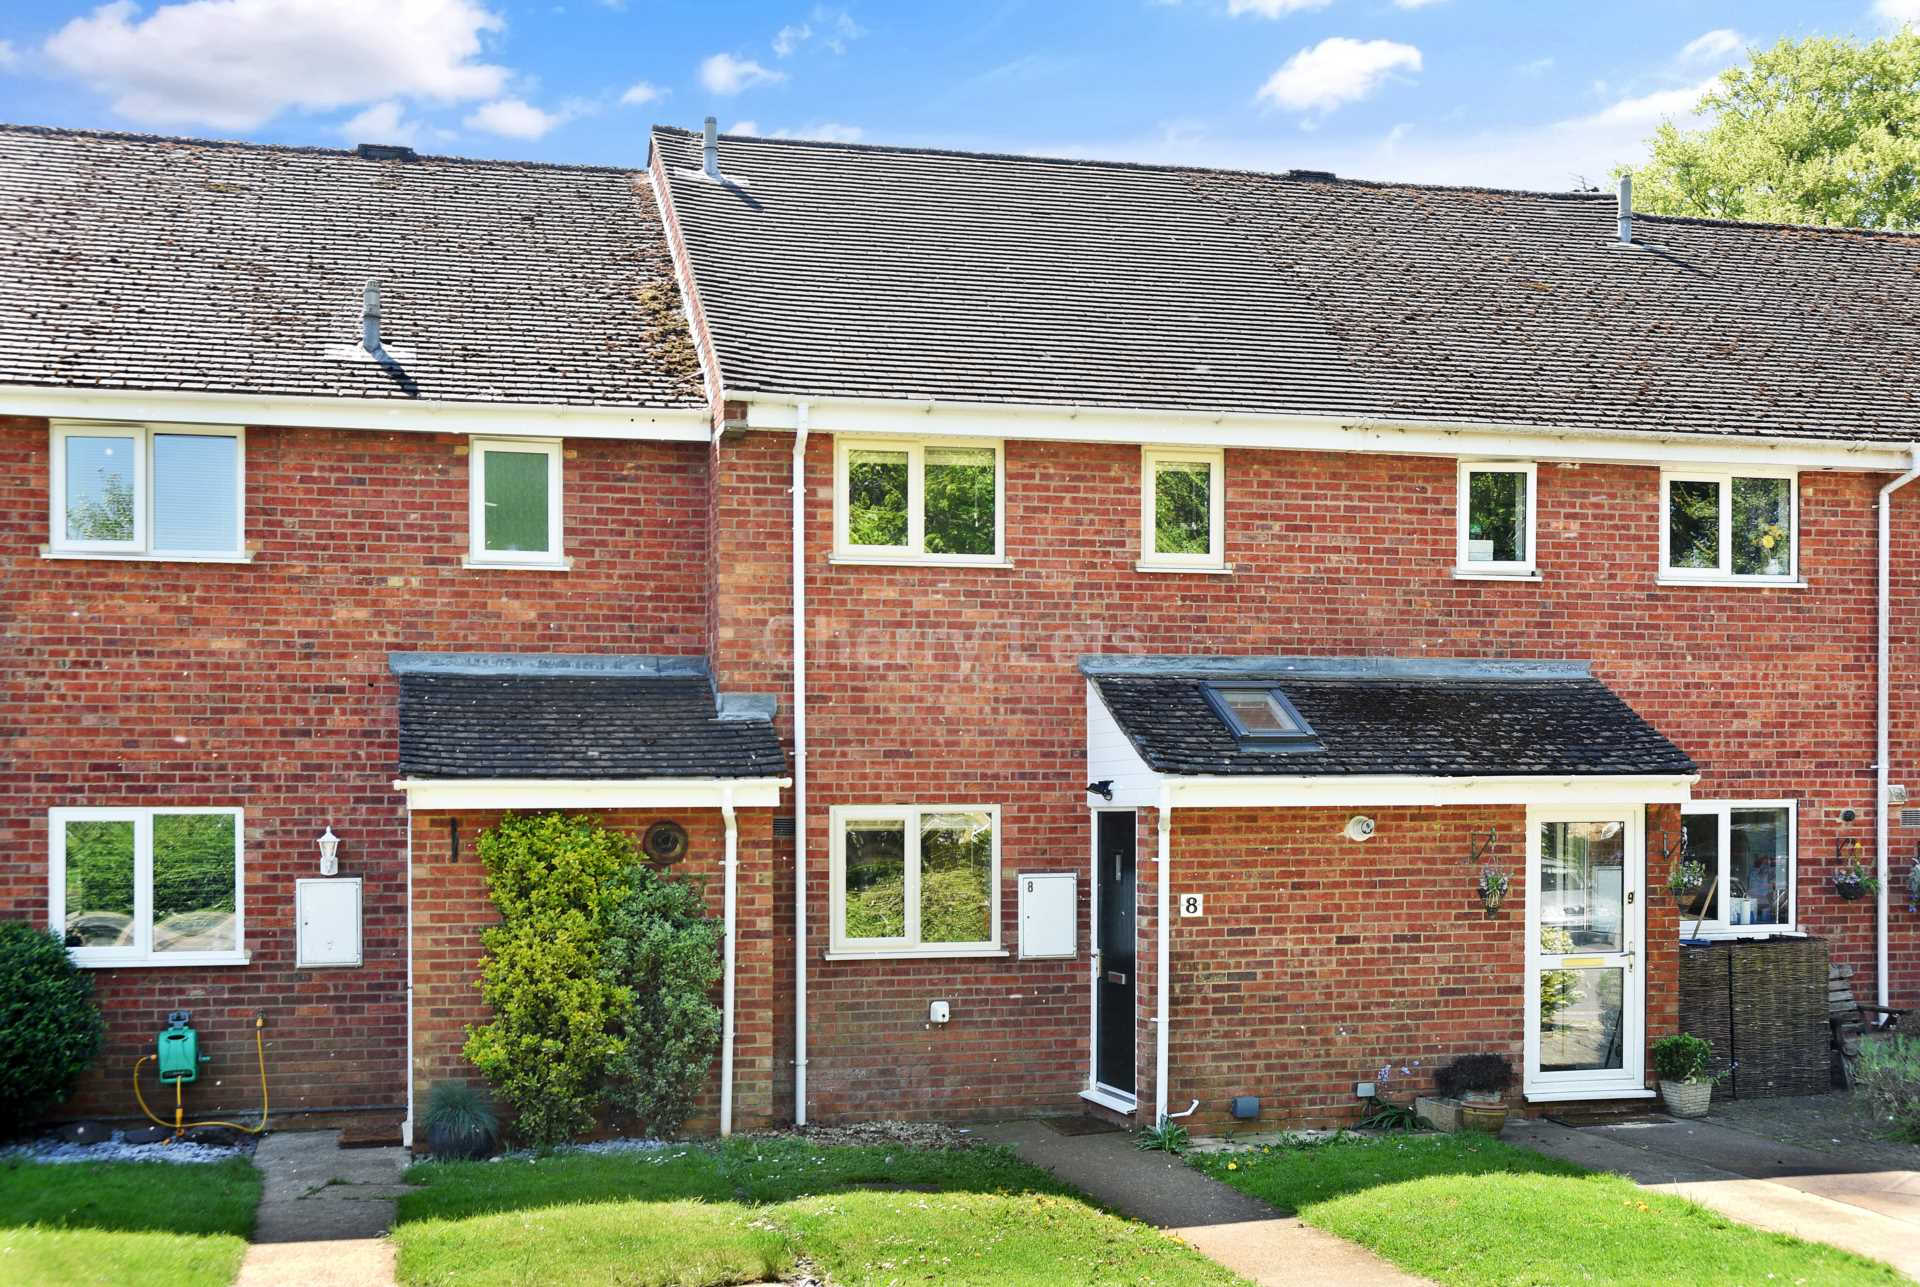 3 bed terraced house to rent in Keytes Close, Adderbury, OX17 0